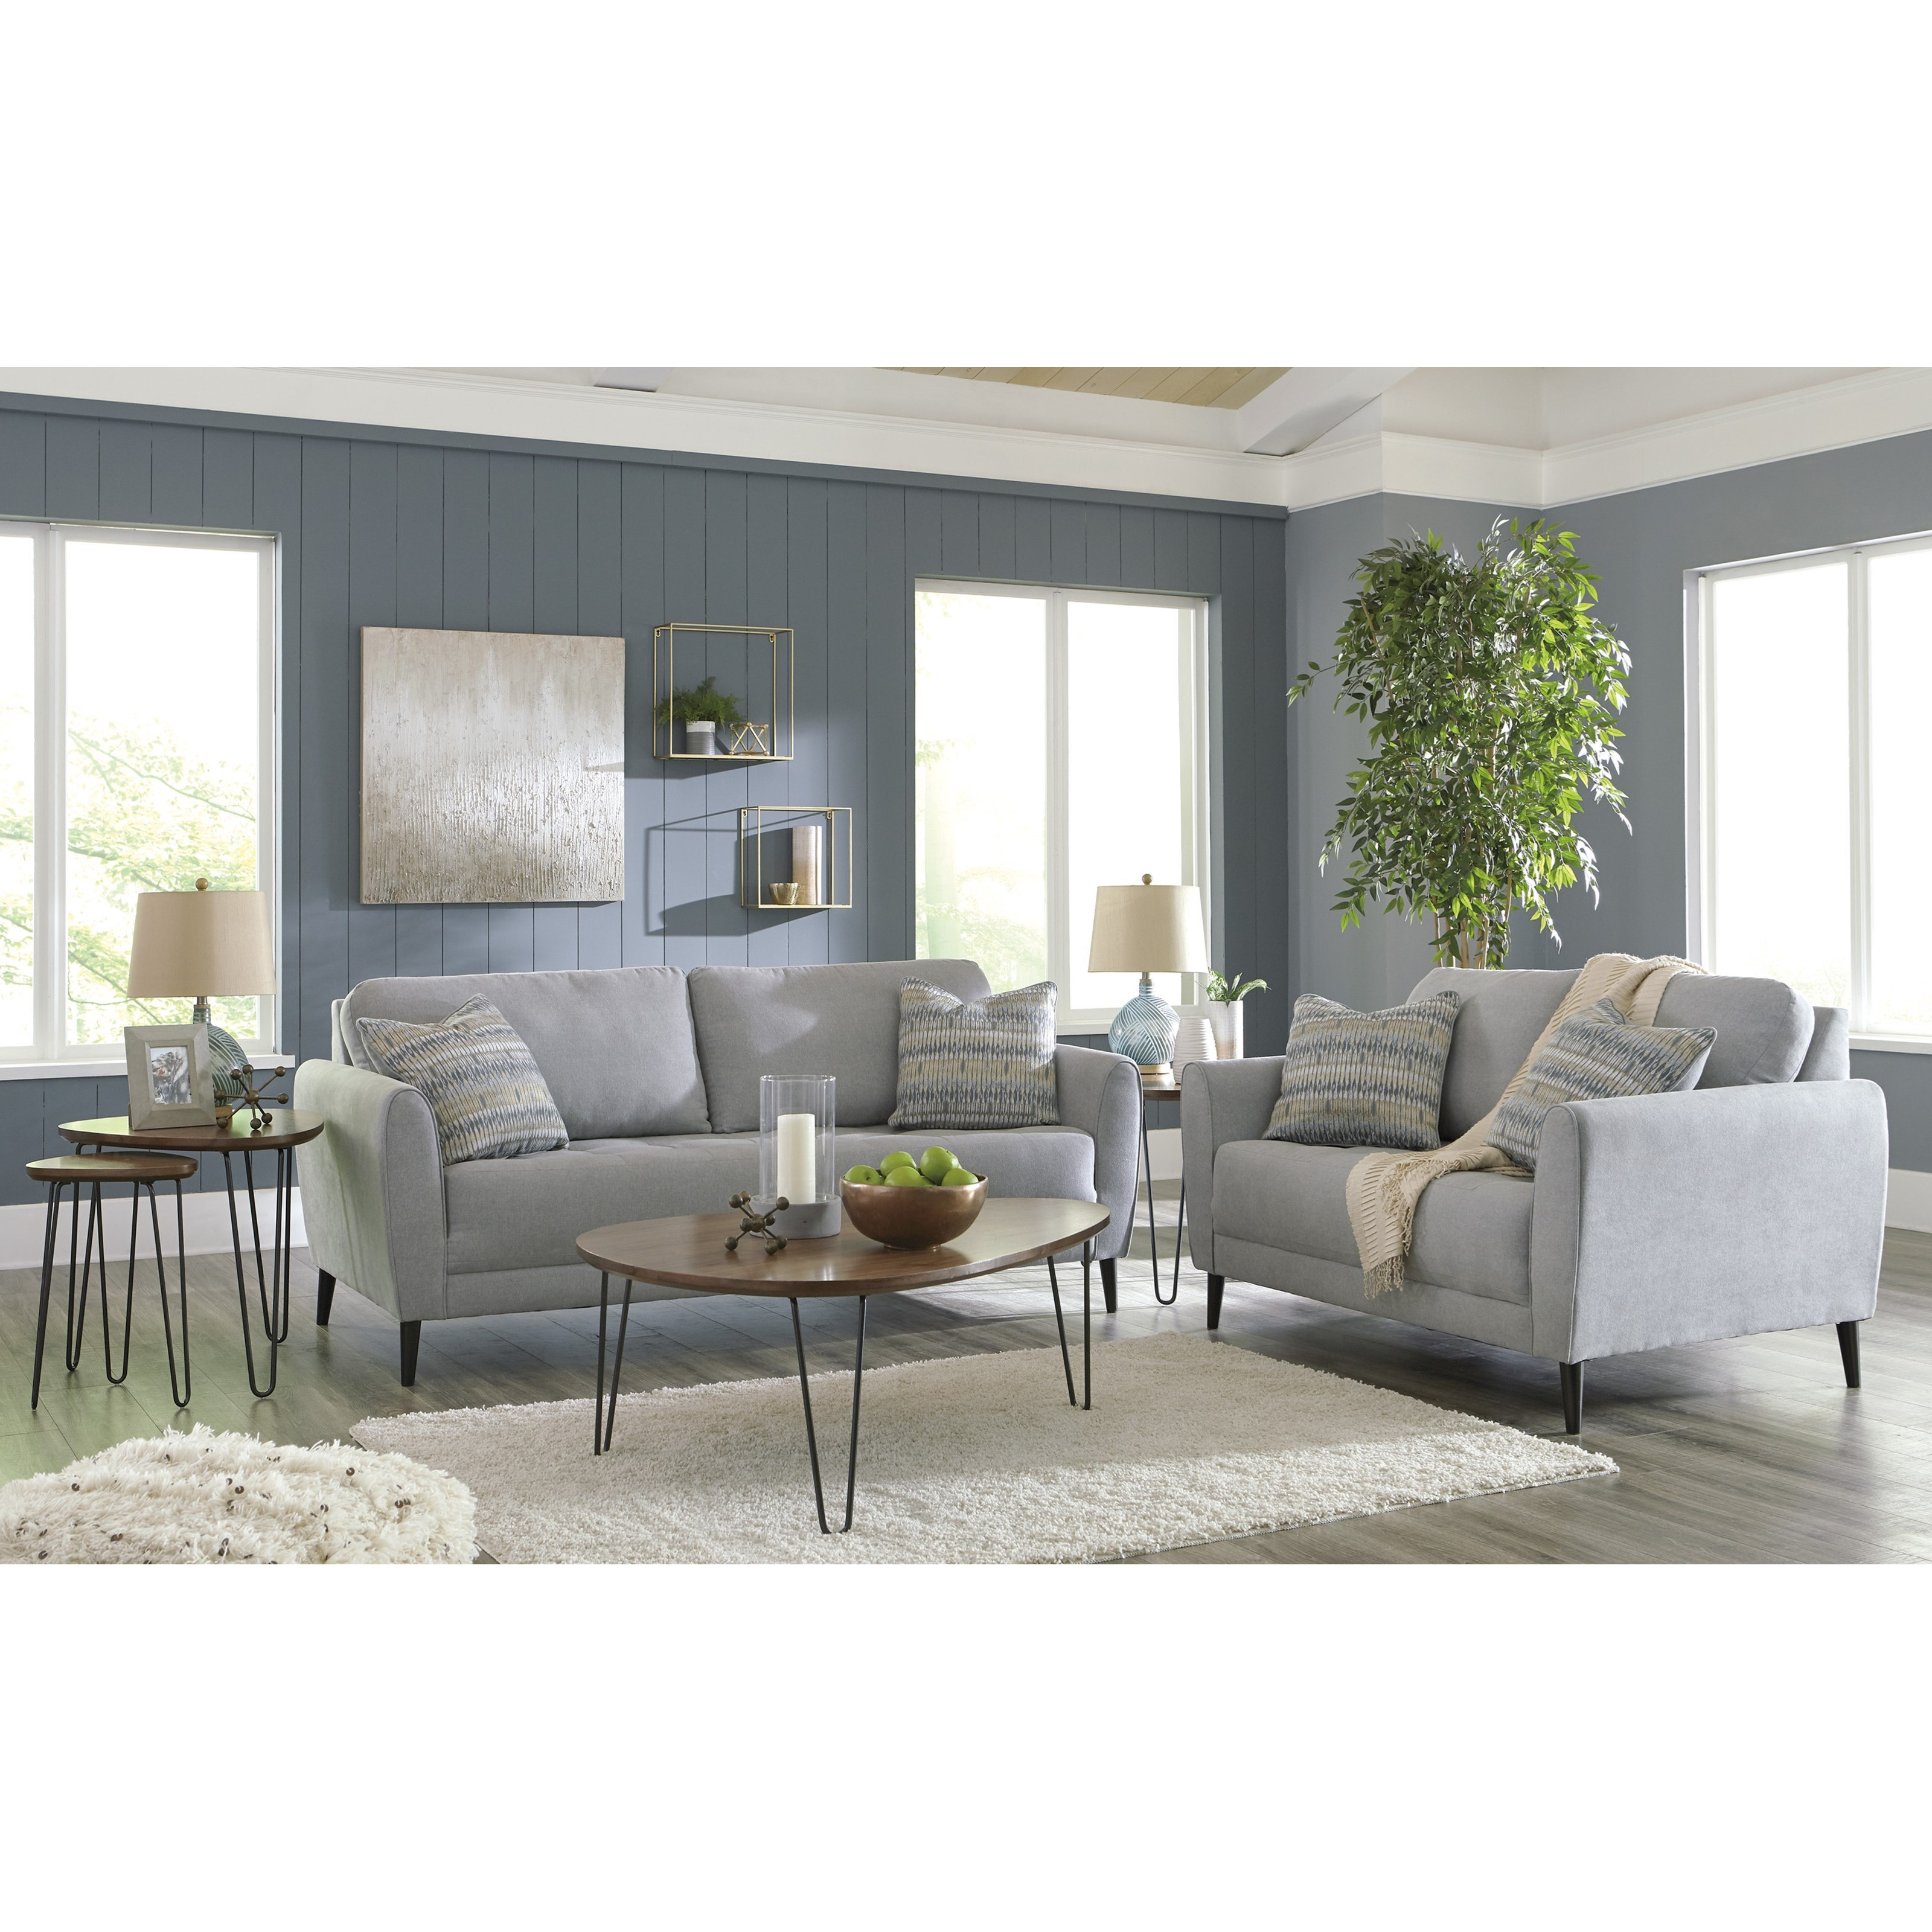 Signature design by ashley cardello living room group for Living room furniture groups